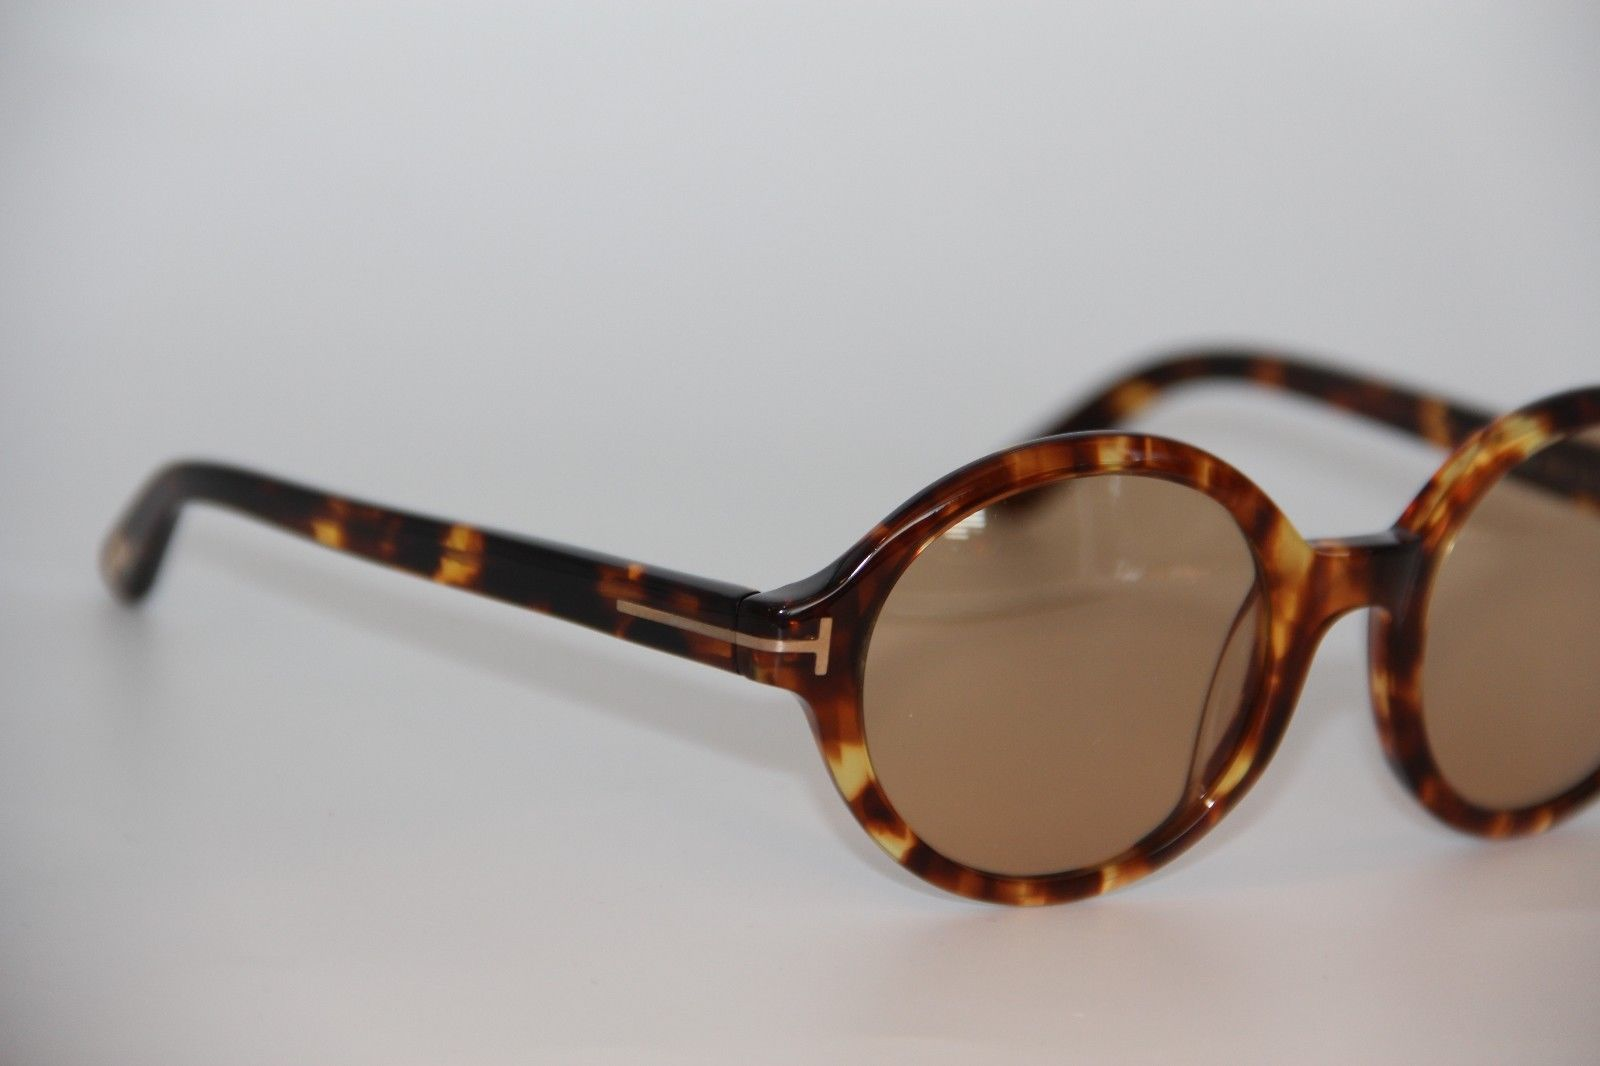 419ece2ba5 ... NEW TOM FORD TF 199 52J CARTER HAVANA AUTHENTIC SUNGLASSES 48-20 W CASE  ...